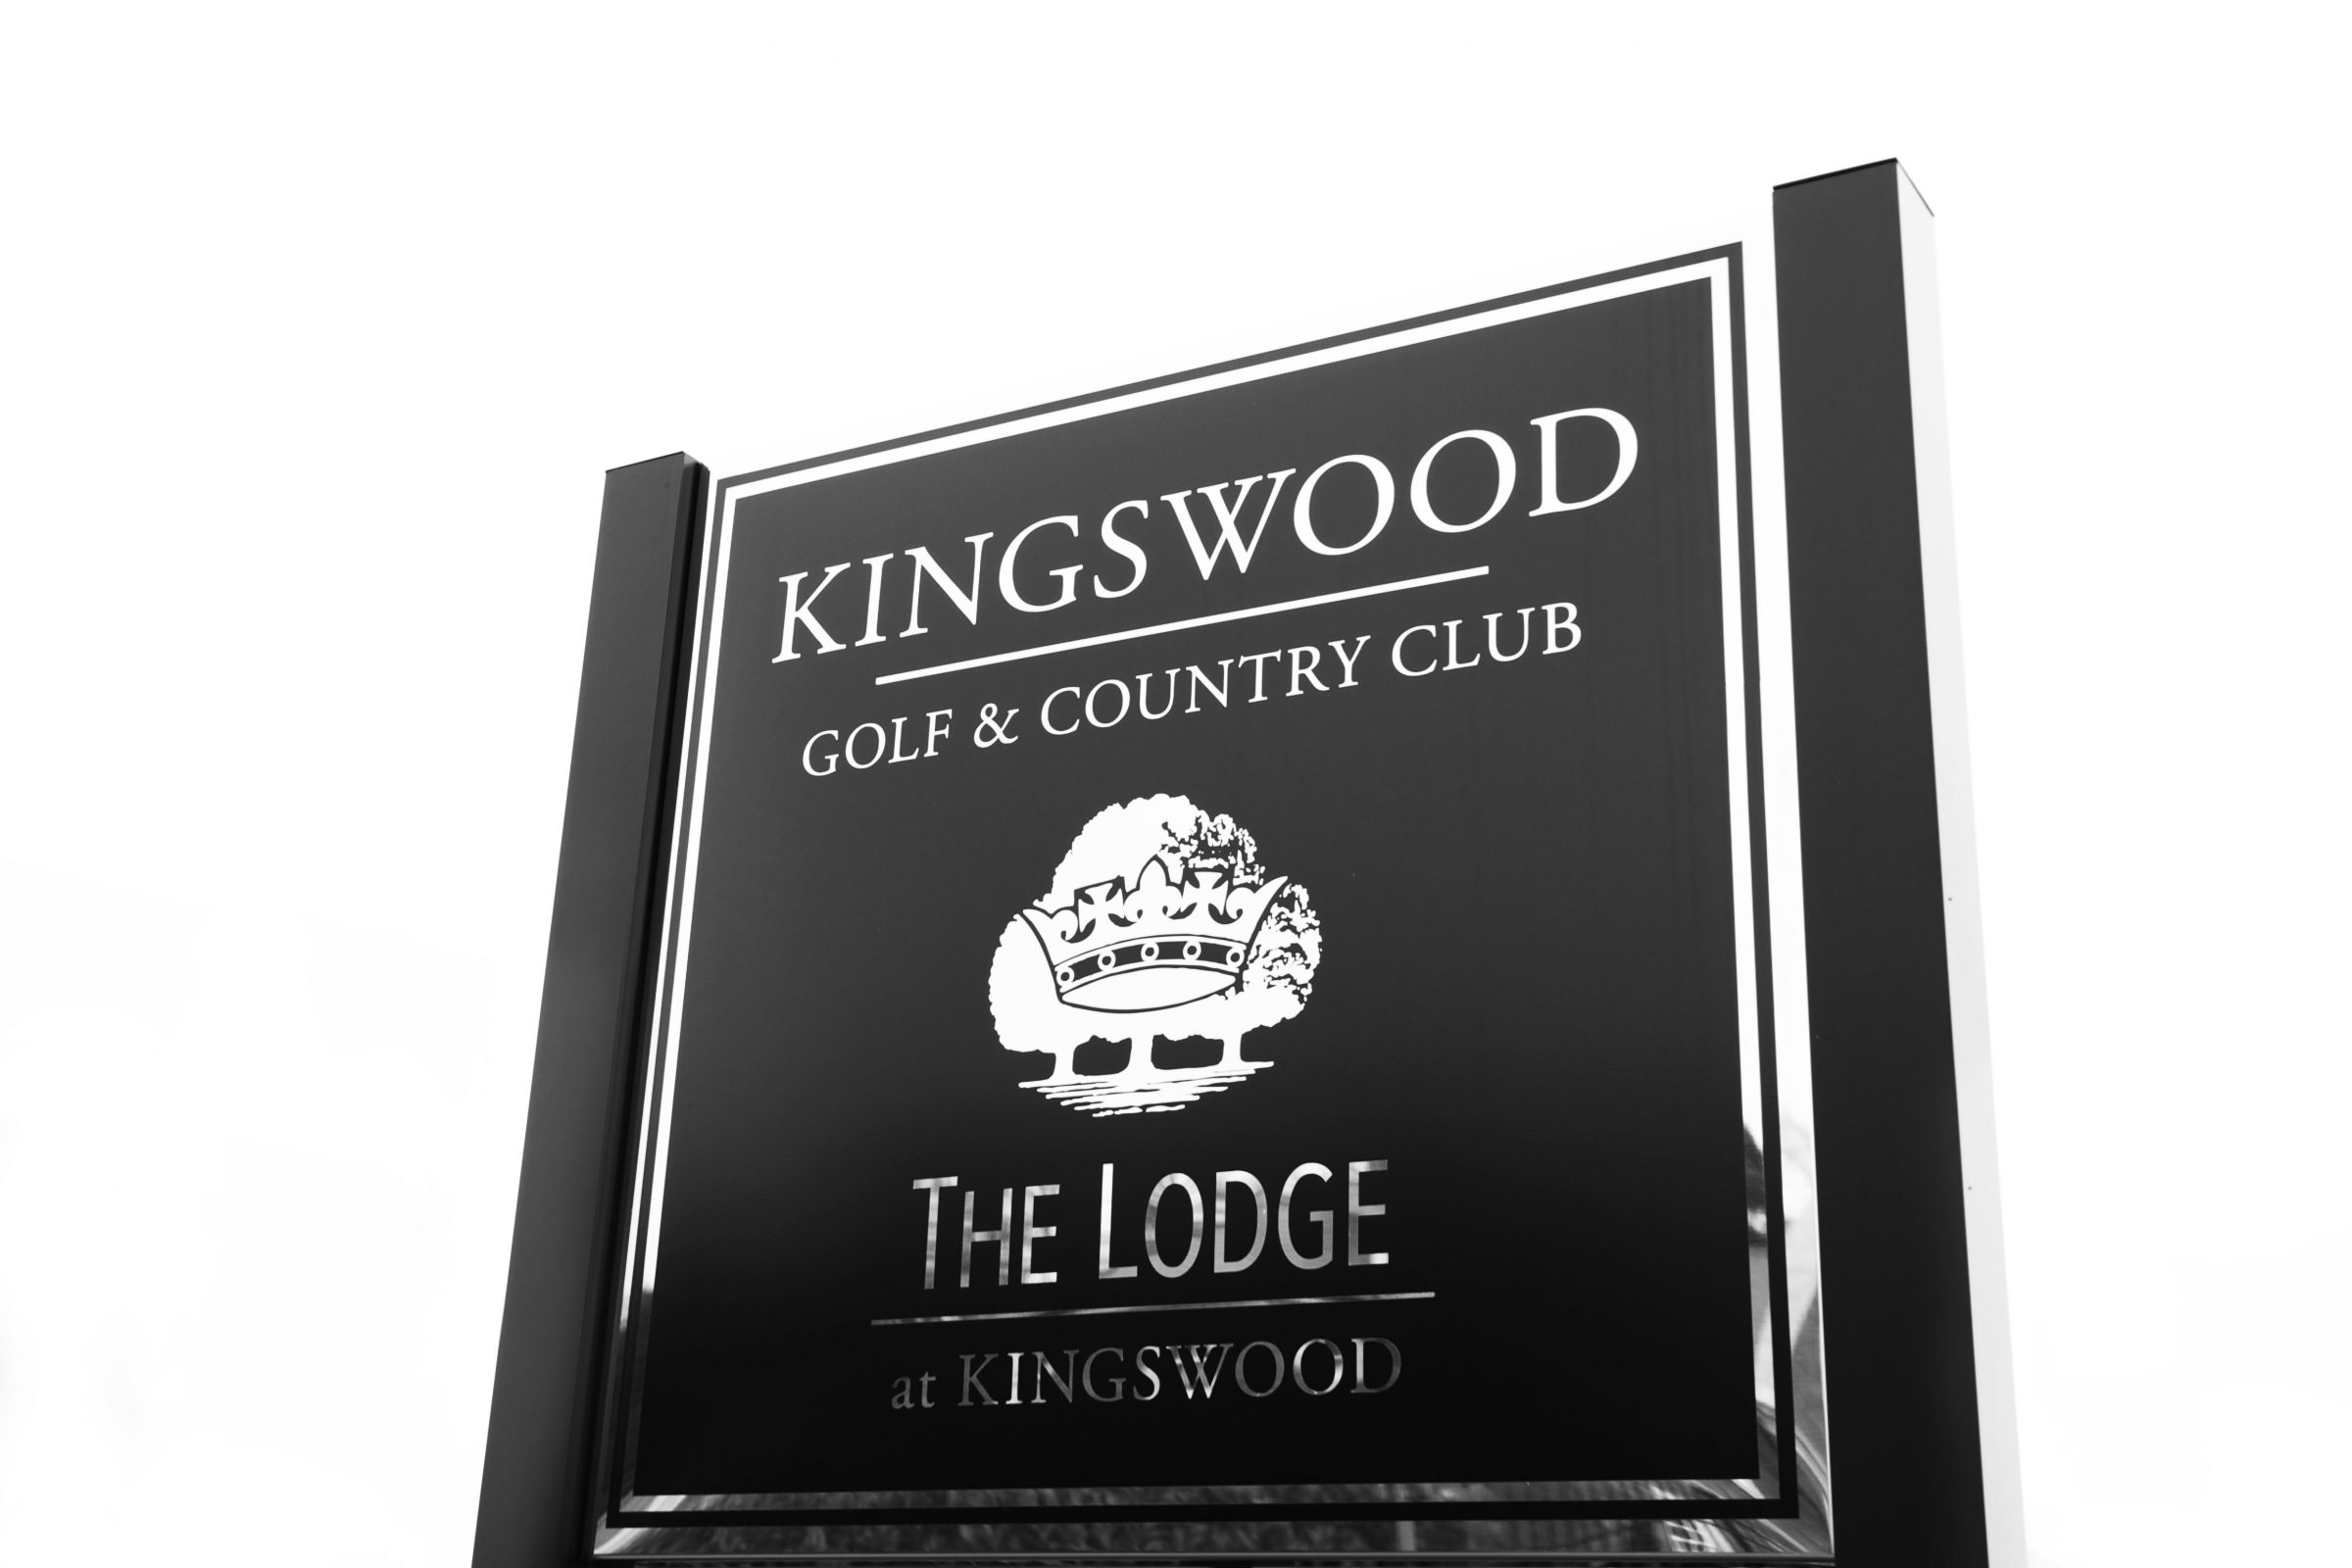 The Lodge at Kingswood Golf Club